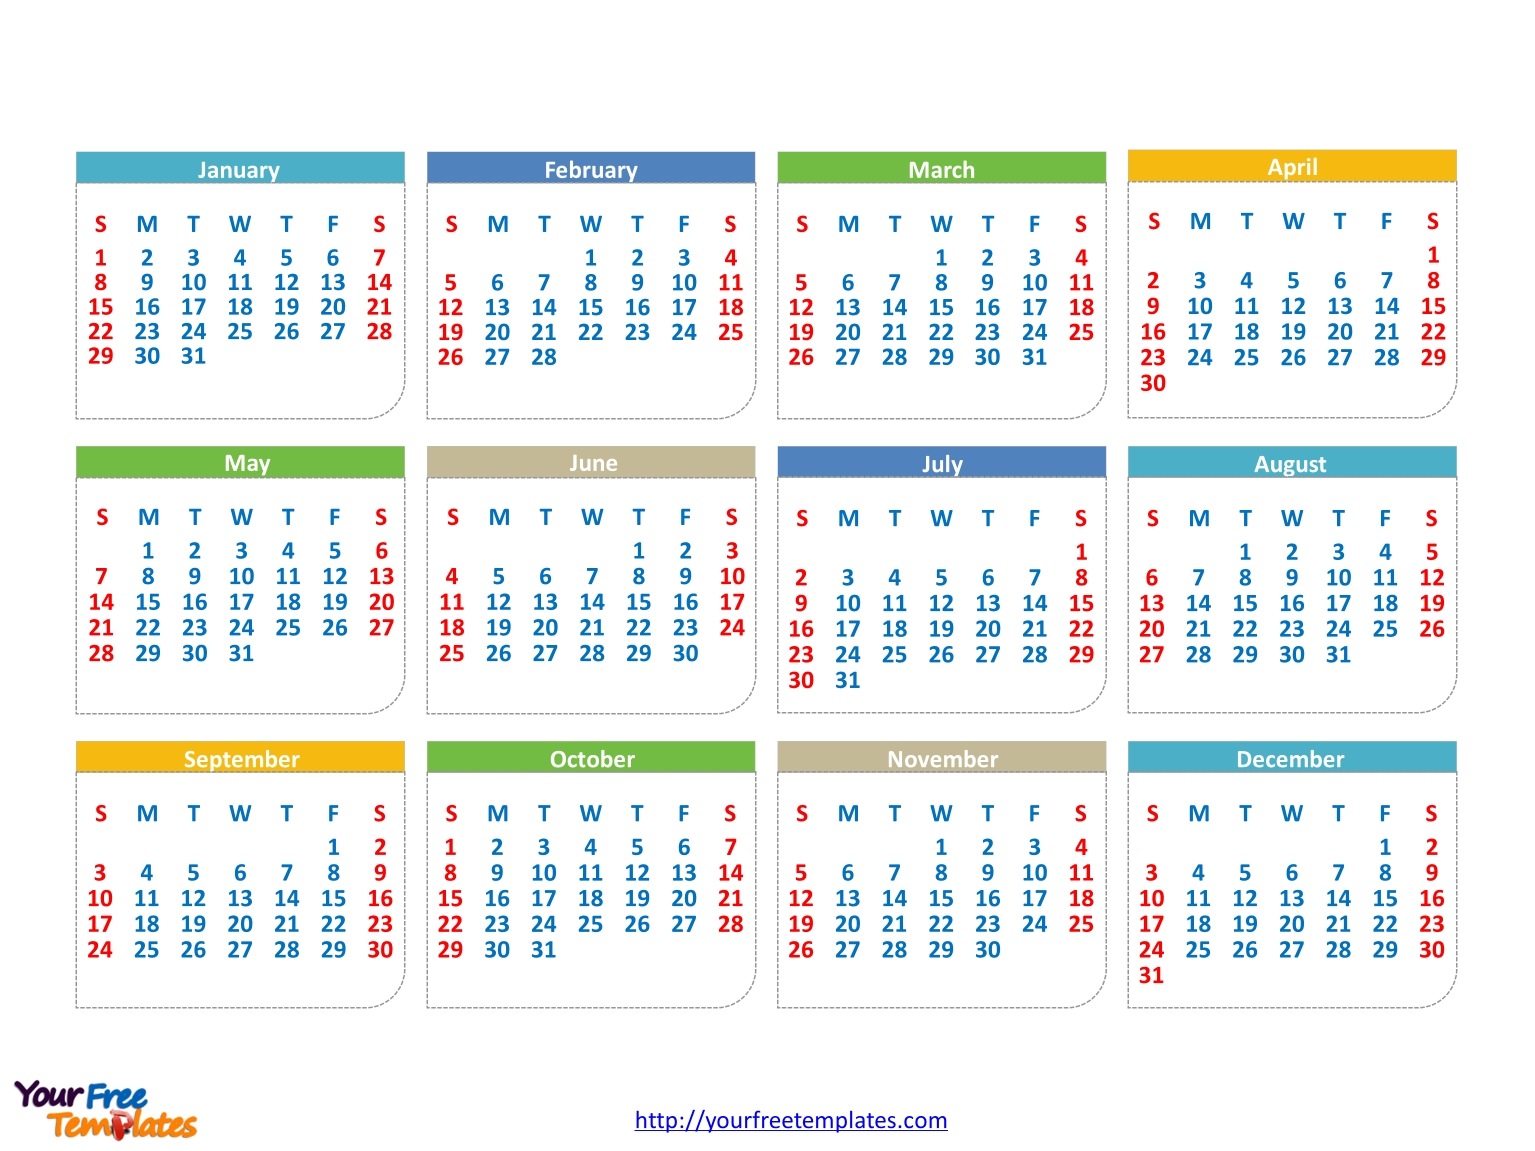 Free 2017 Calendars Powerpoint Template - Free Powerpoint  Calendar At A Glance Template Powerpoint